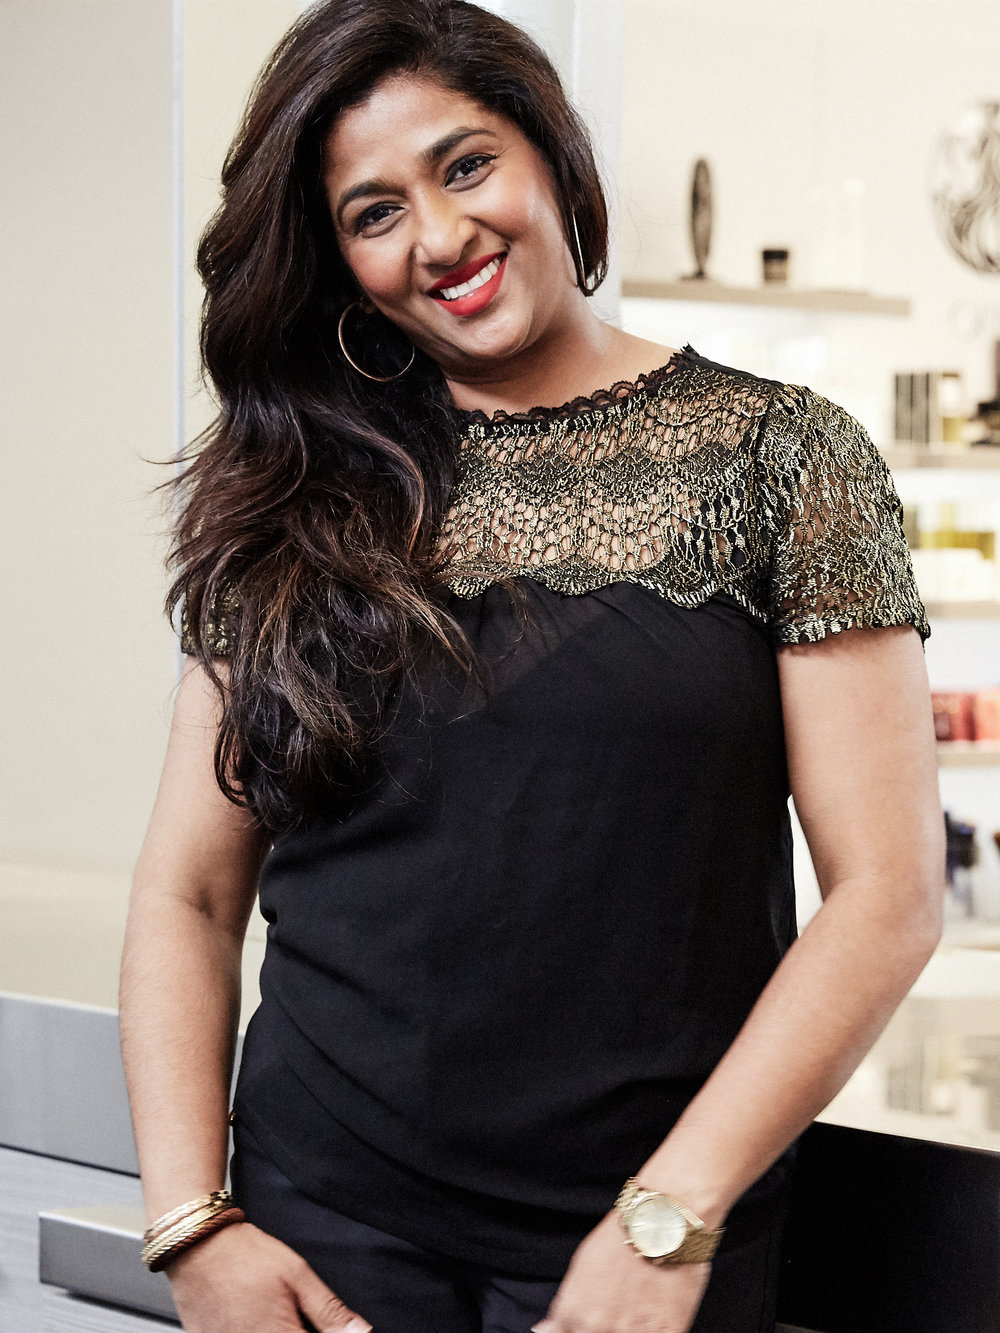 ANGIE   Angie has spent 15 years at Butterfly Studio and 22 years in the beauty industry. She is best known for textured cutting and styling techniques including relaxers and edgy, tailored styles. Her policy is to understand all hair types and cuts and to listen to her client's needs. Angie's tailored men's cutting style has garnered her much praise among Hollywood favorites Adam Ferrara and Mike Manning.   @anjiehookumchand_